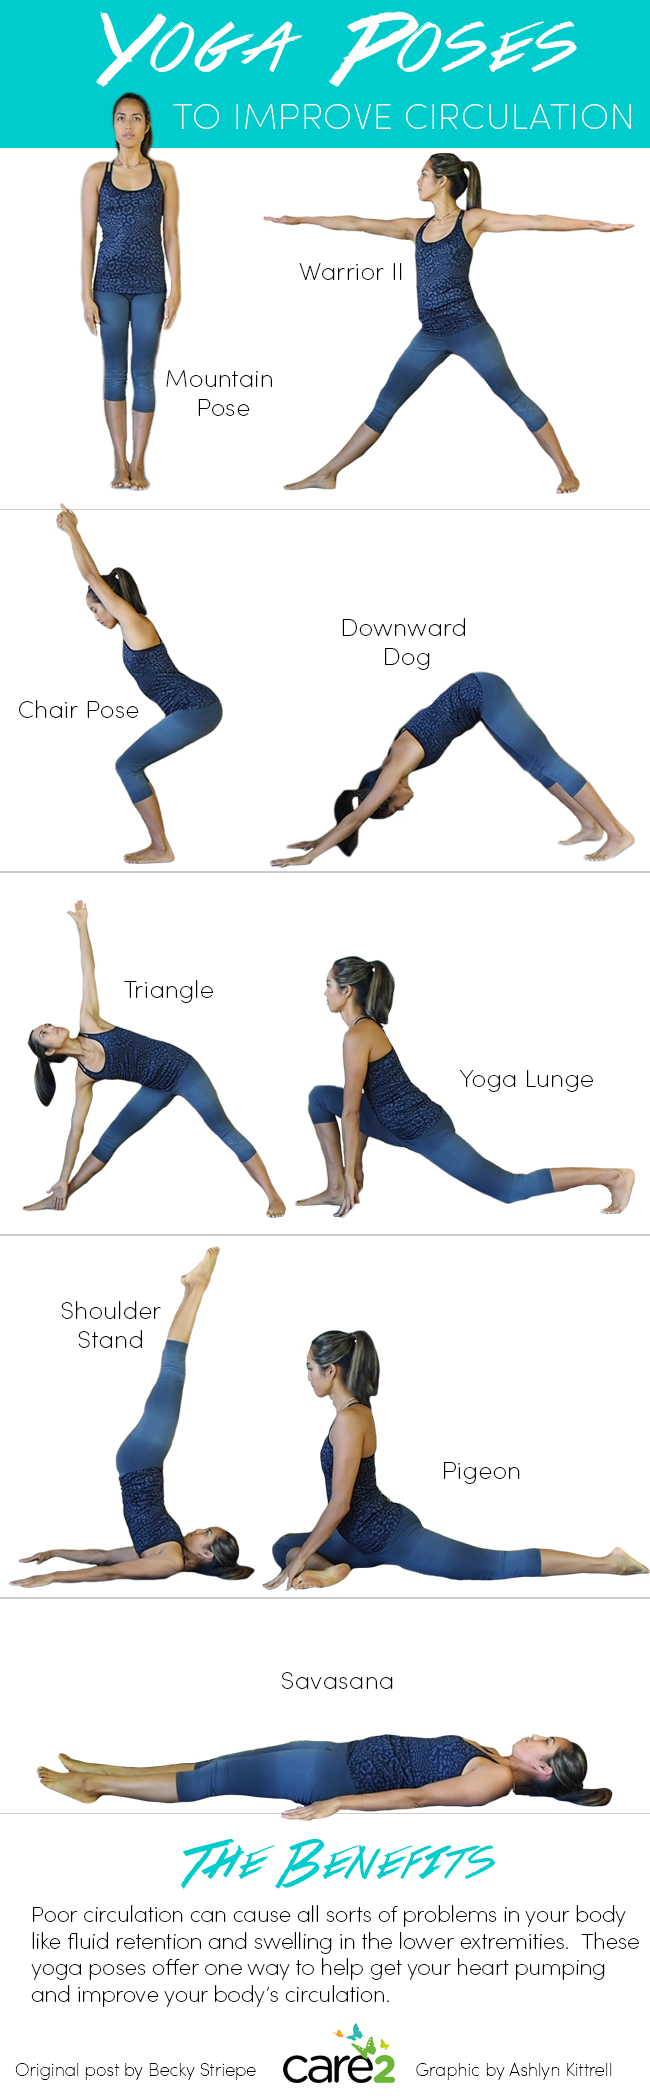 Yoga Poses to Improve Circulation